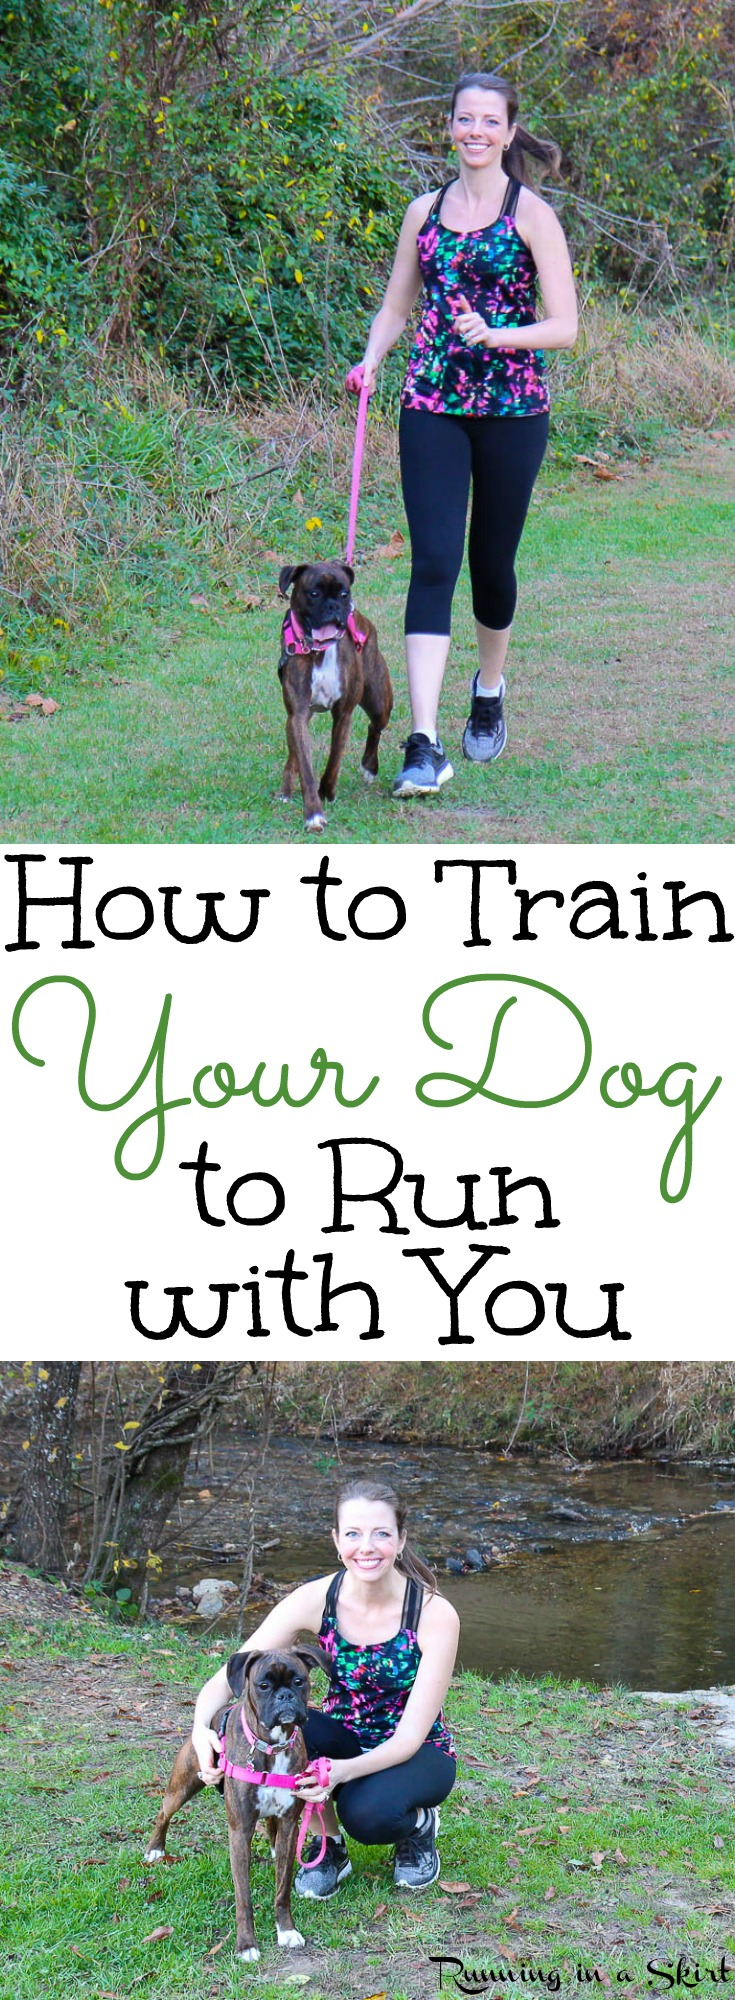 How to Train Your Dog to Run with You including fun and useful tips and training for running with your dog at any age. A great way to get healthy exercise for both  you and your pet!  Includes a how to build mileage plan./ Running in a Skirt via @juliewunder